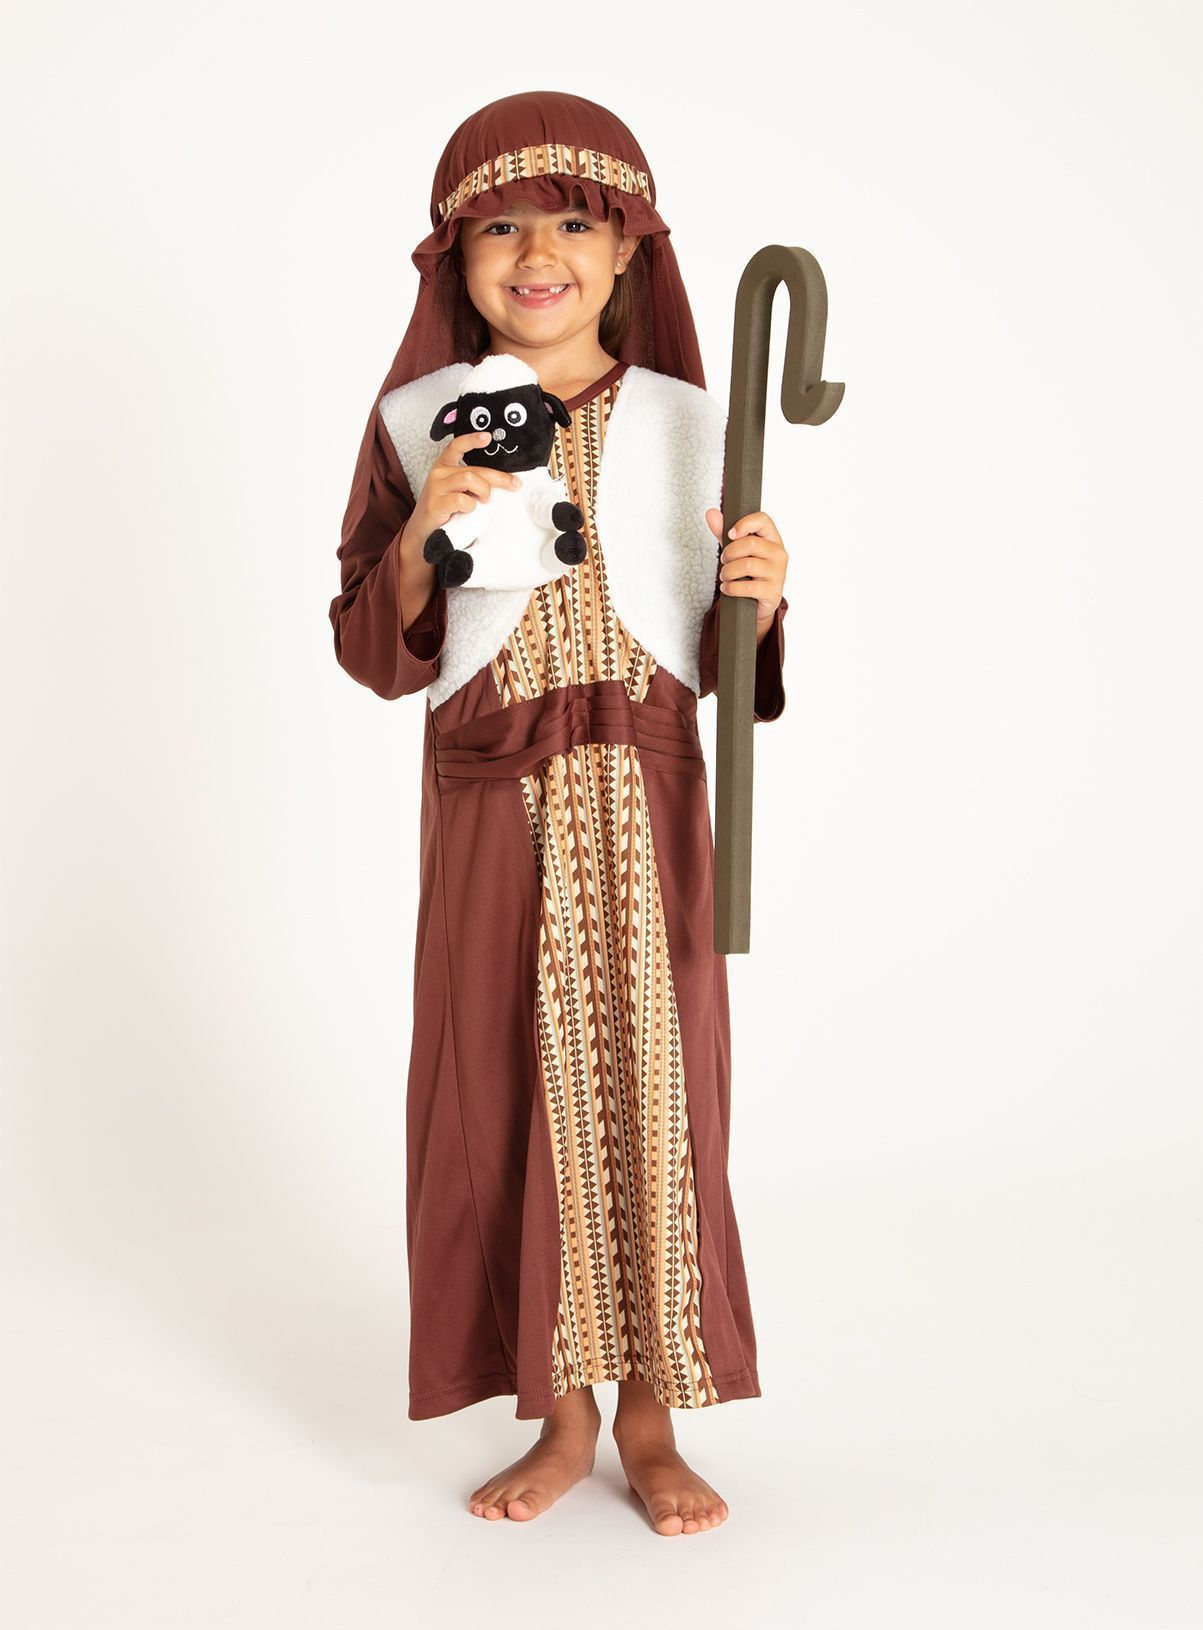 Christmas Nativity Brown Shepherd & Sheep Costume #sheepcostume Christmas Nativity Brown Shepherd & Sheep Costume #sheepcostume Christmas Nativity Brown Shepherd & Sheep Costume #sheepcostume Christmas Nativity Brown Shepherd & Sheep Costume #sheepcostume Christmas Nativity Brown Shepherd & Sheep Costume #sheepcostume Christmas Nativity Brown Shepherd & Sheep Costume #sheepcostume Christmas Nativity Brown Shepherd & Sheep Costume #sheepcostume Christmas Nativity Brown Shepherd & Sheep Costume #s #sheepcostume